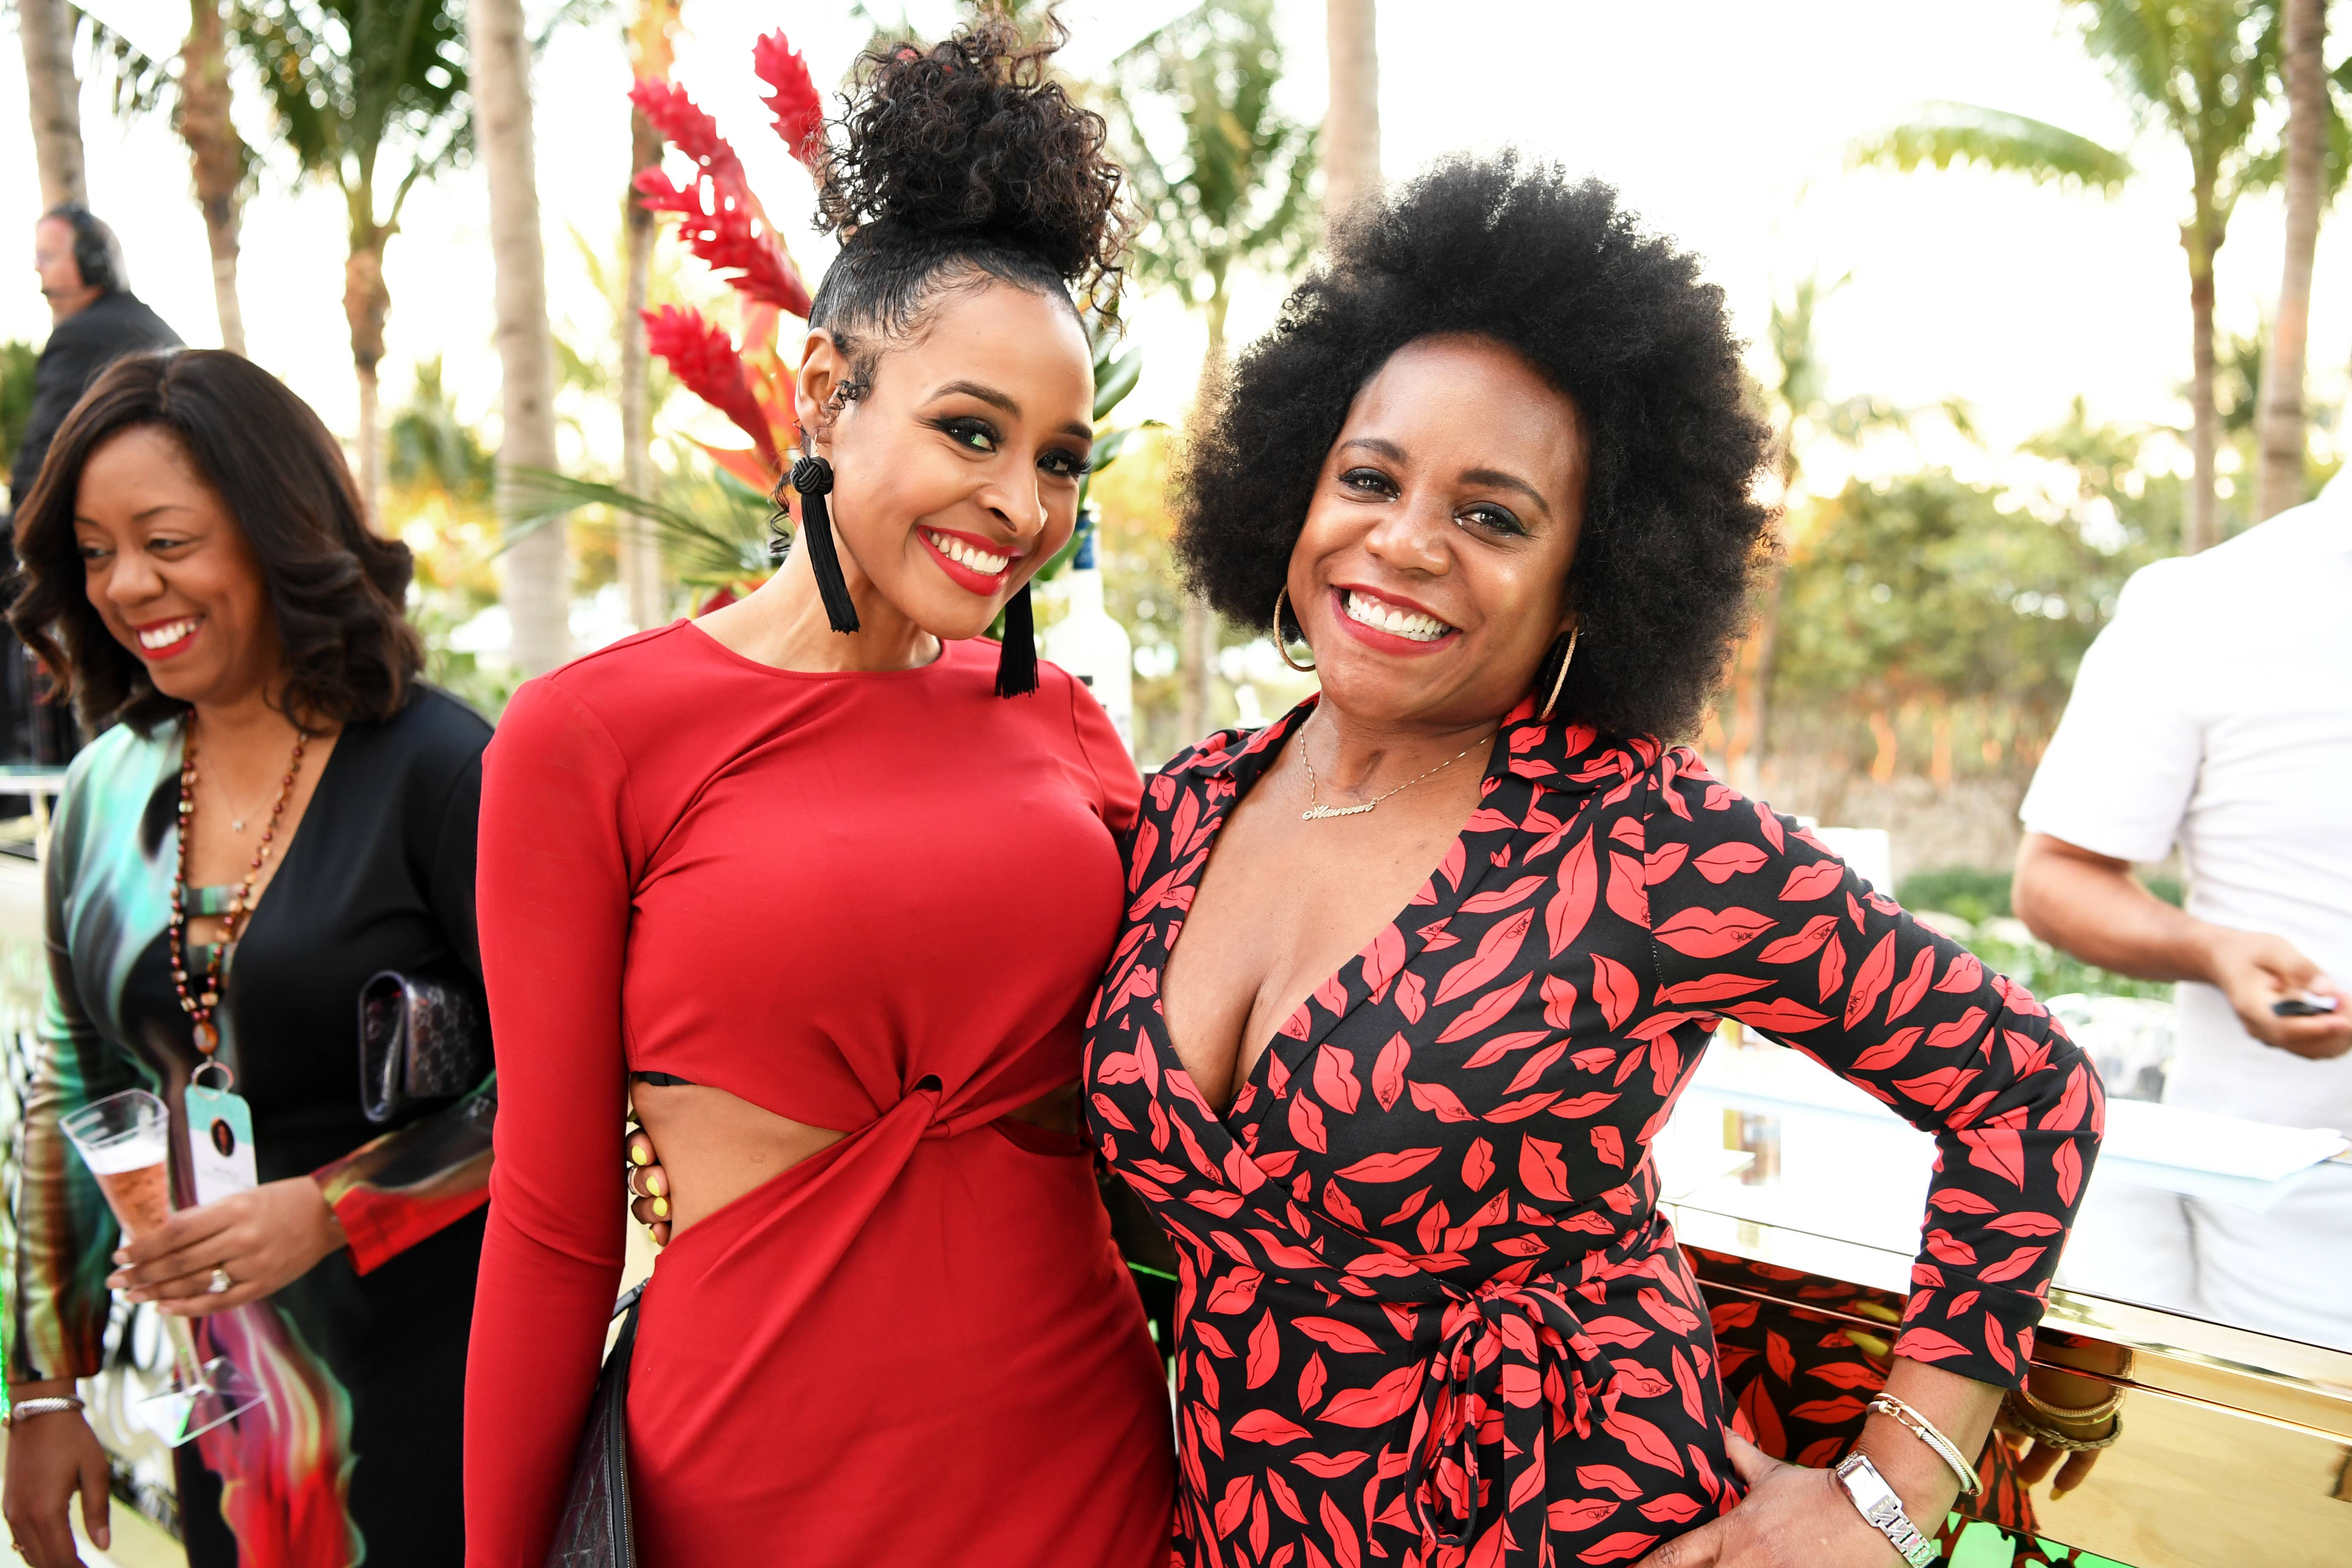 Janell Snowden and Maureen Carter - The media personality links up with BET's own VP of Design during the festivities.(Photo: Phelan Marc/BET)